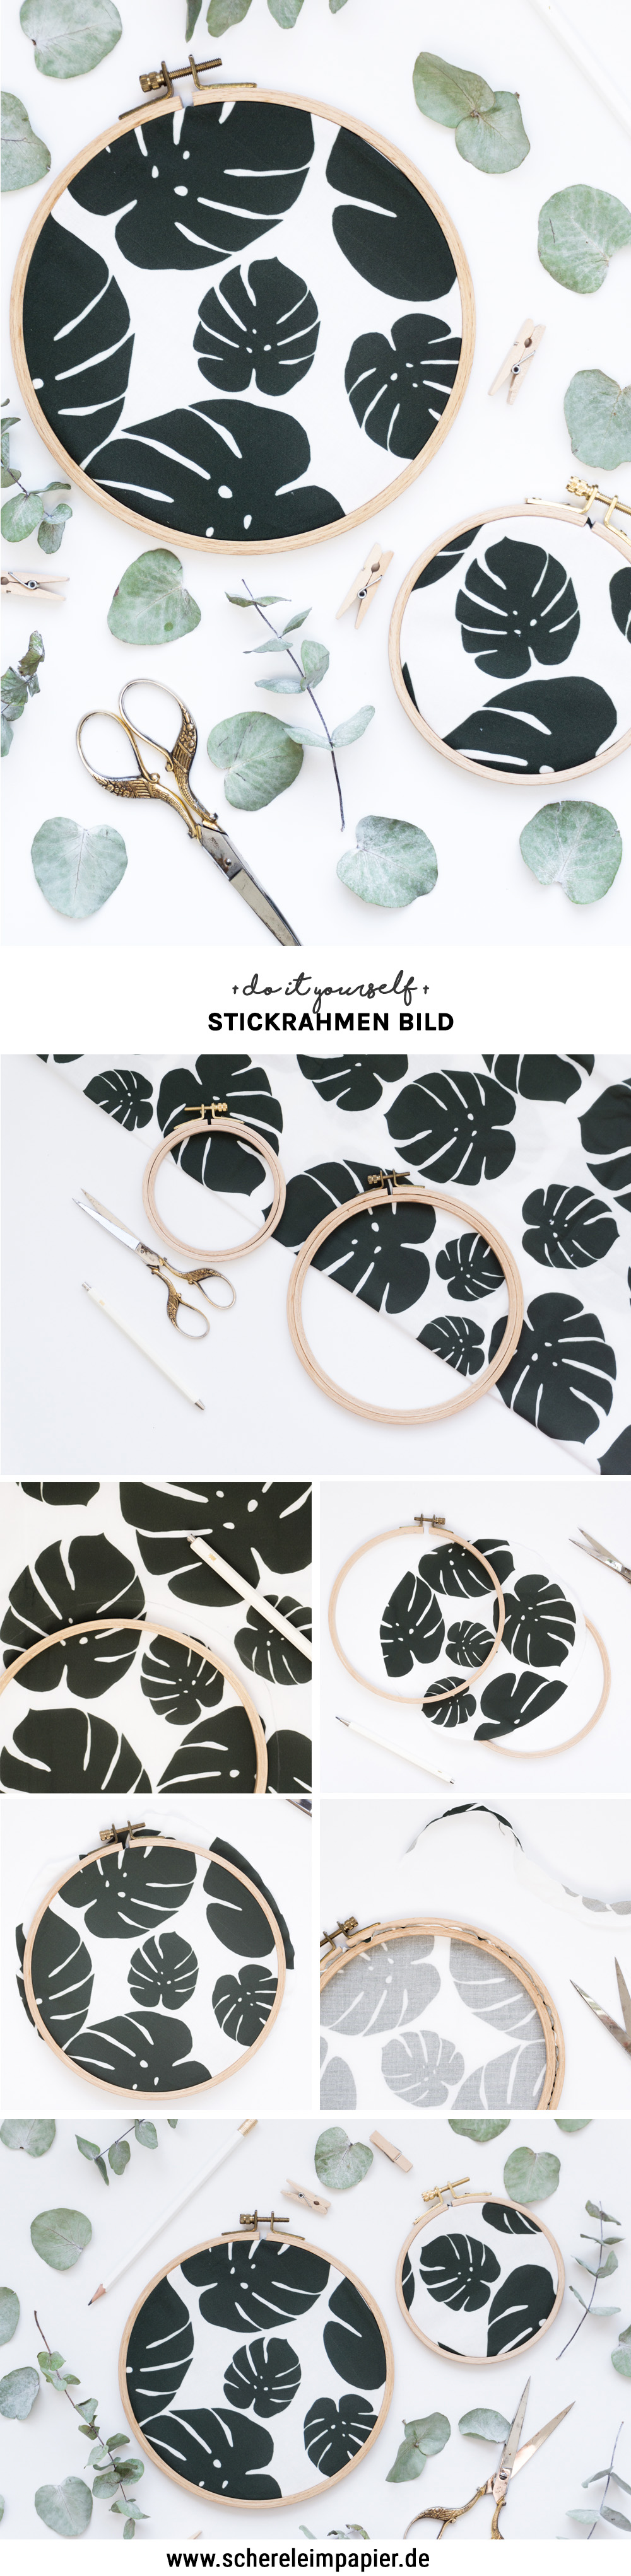 diy stoff bedrucken schereleimpapier dy blog upcyling stickrahmen idee kreativ pin. Black Bedroom Furniture Sets. Home Design Ideas